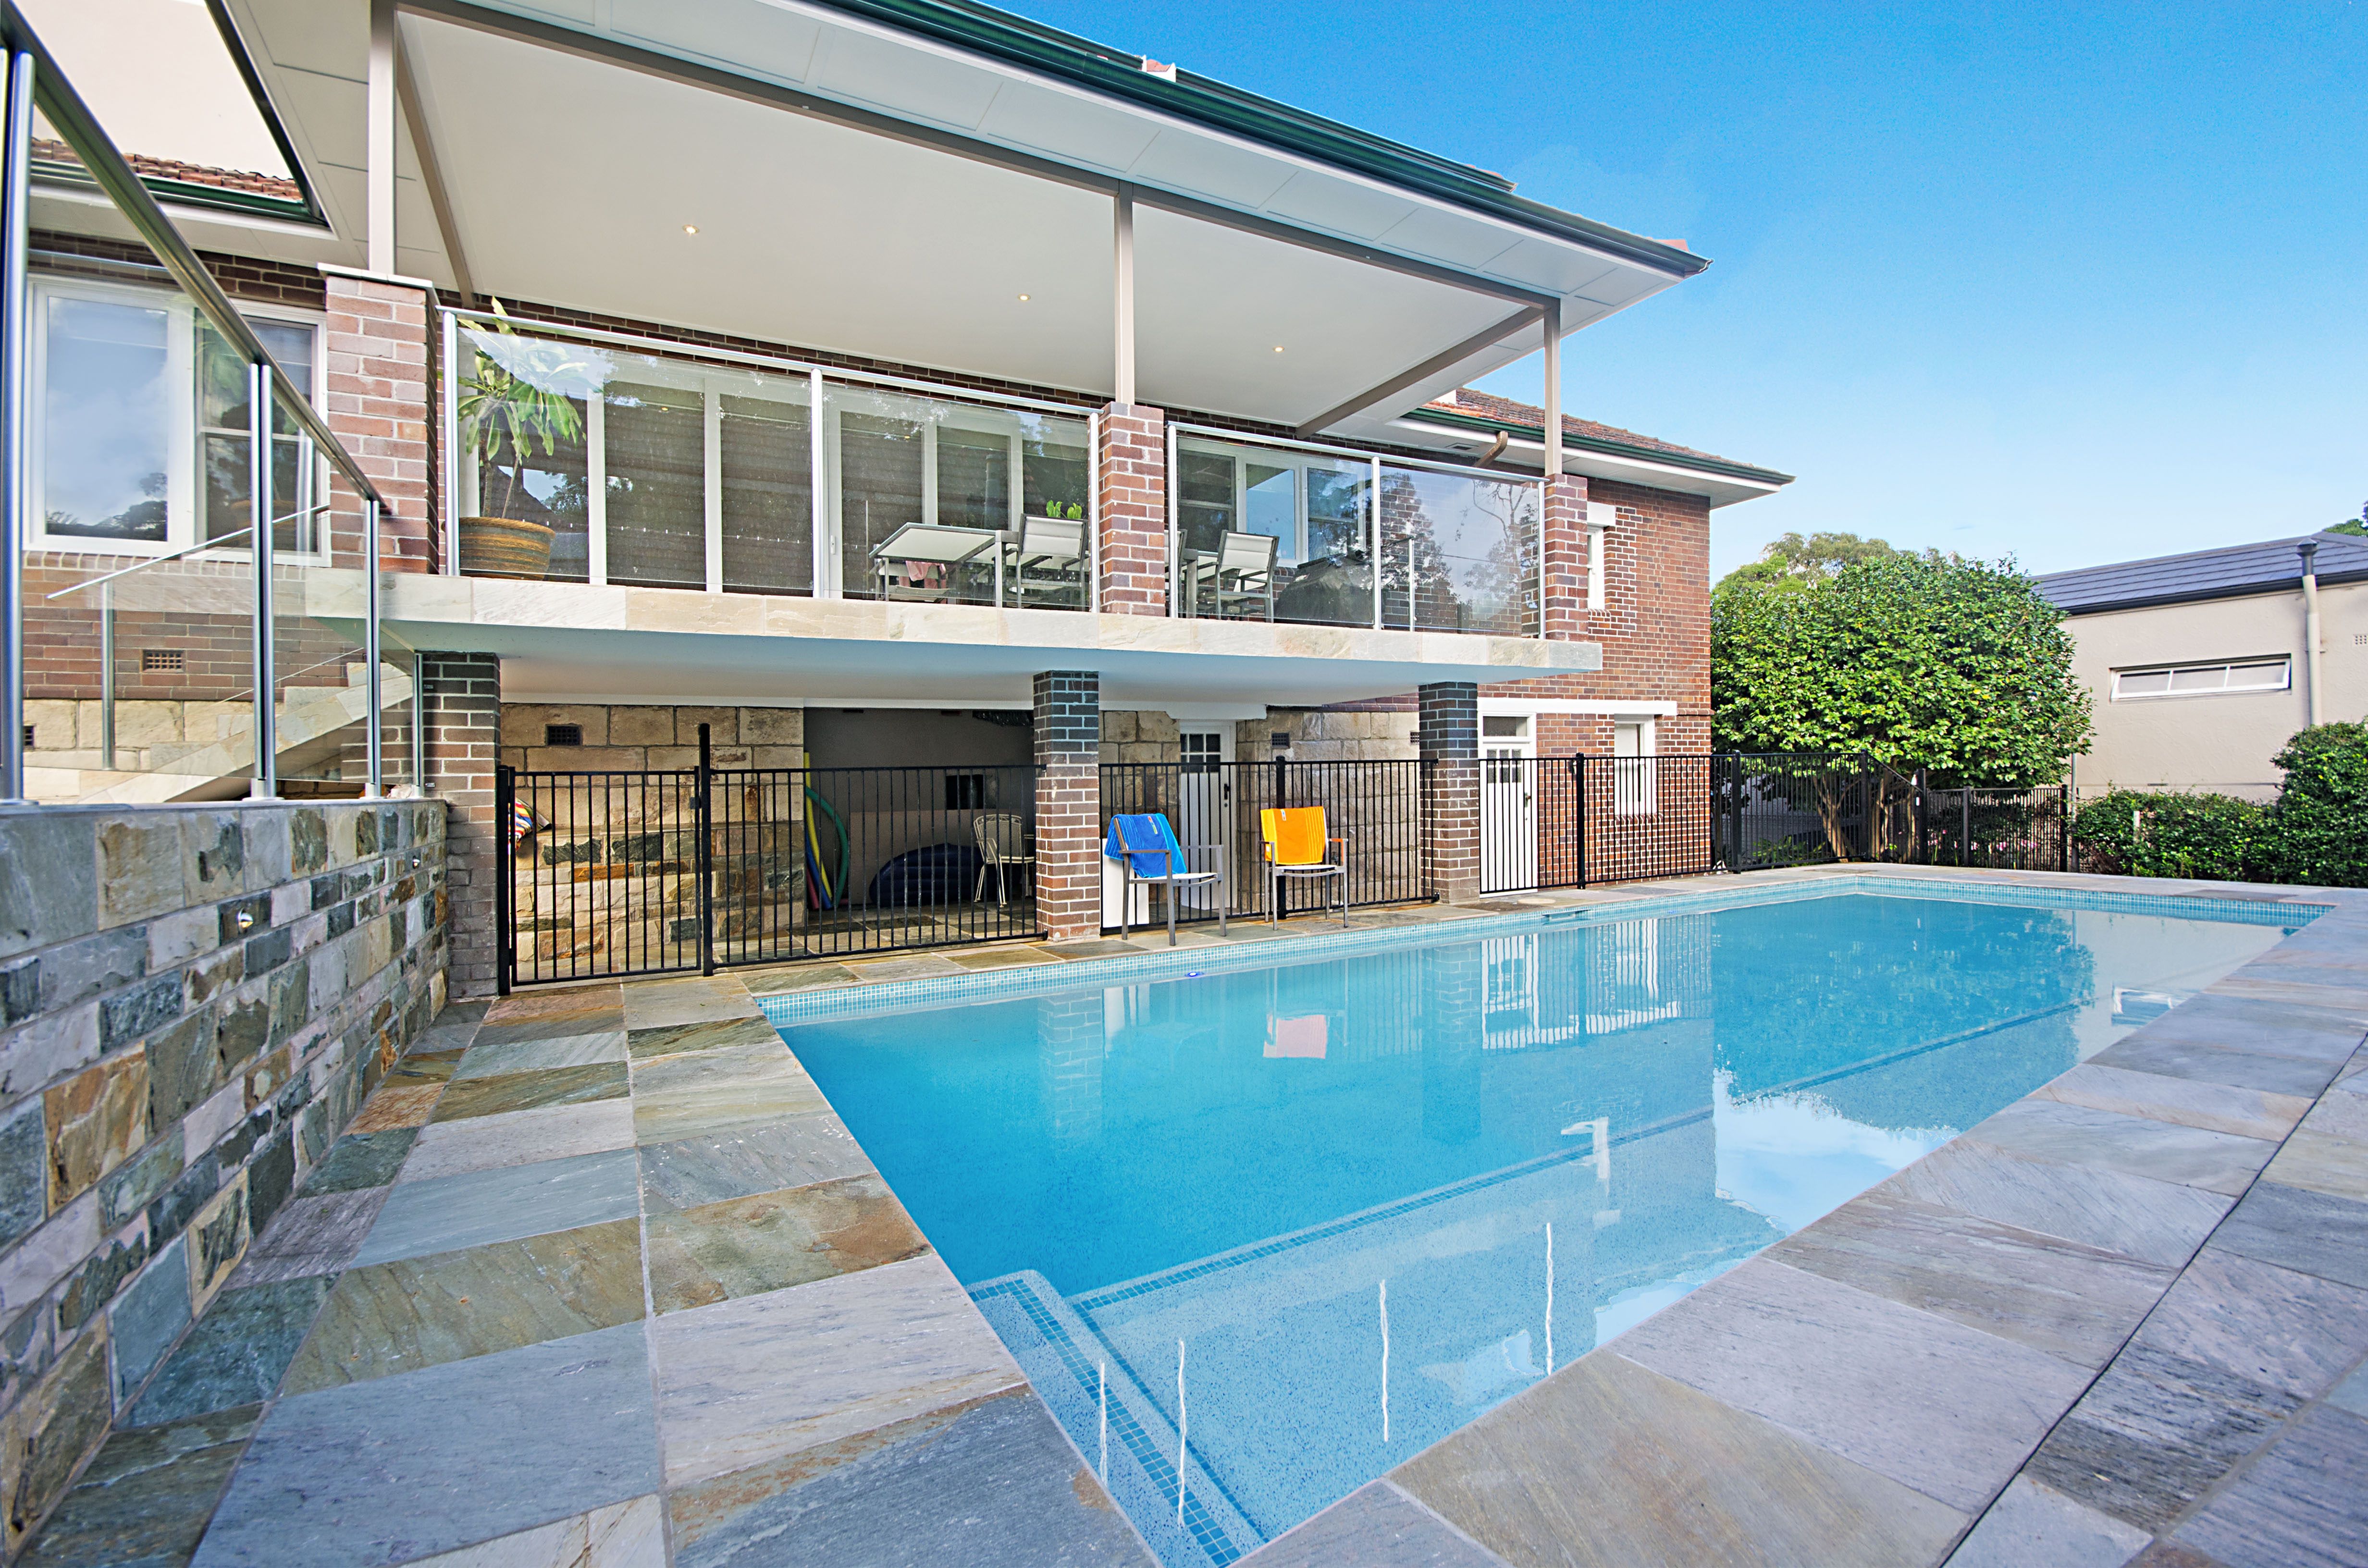 Backyard pool solar sydney pool and outdoor design for Pool design sydney